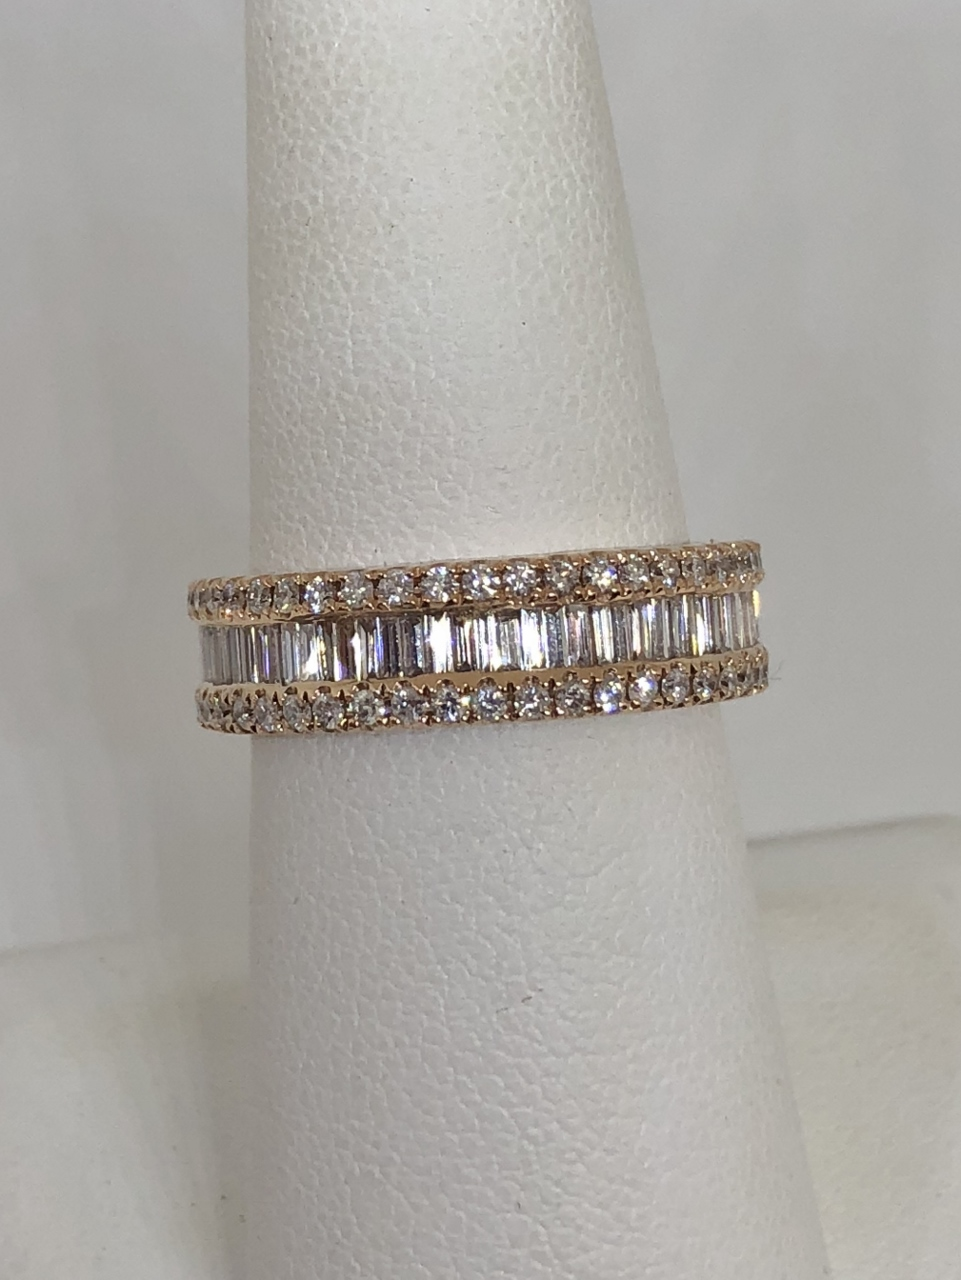 1-3/4 Carats Total Weight Eternity Diamond Band